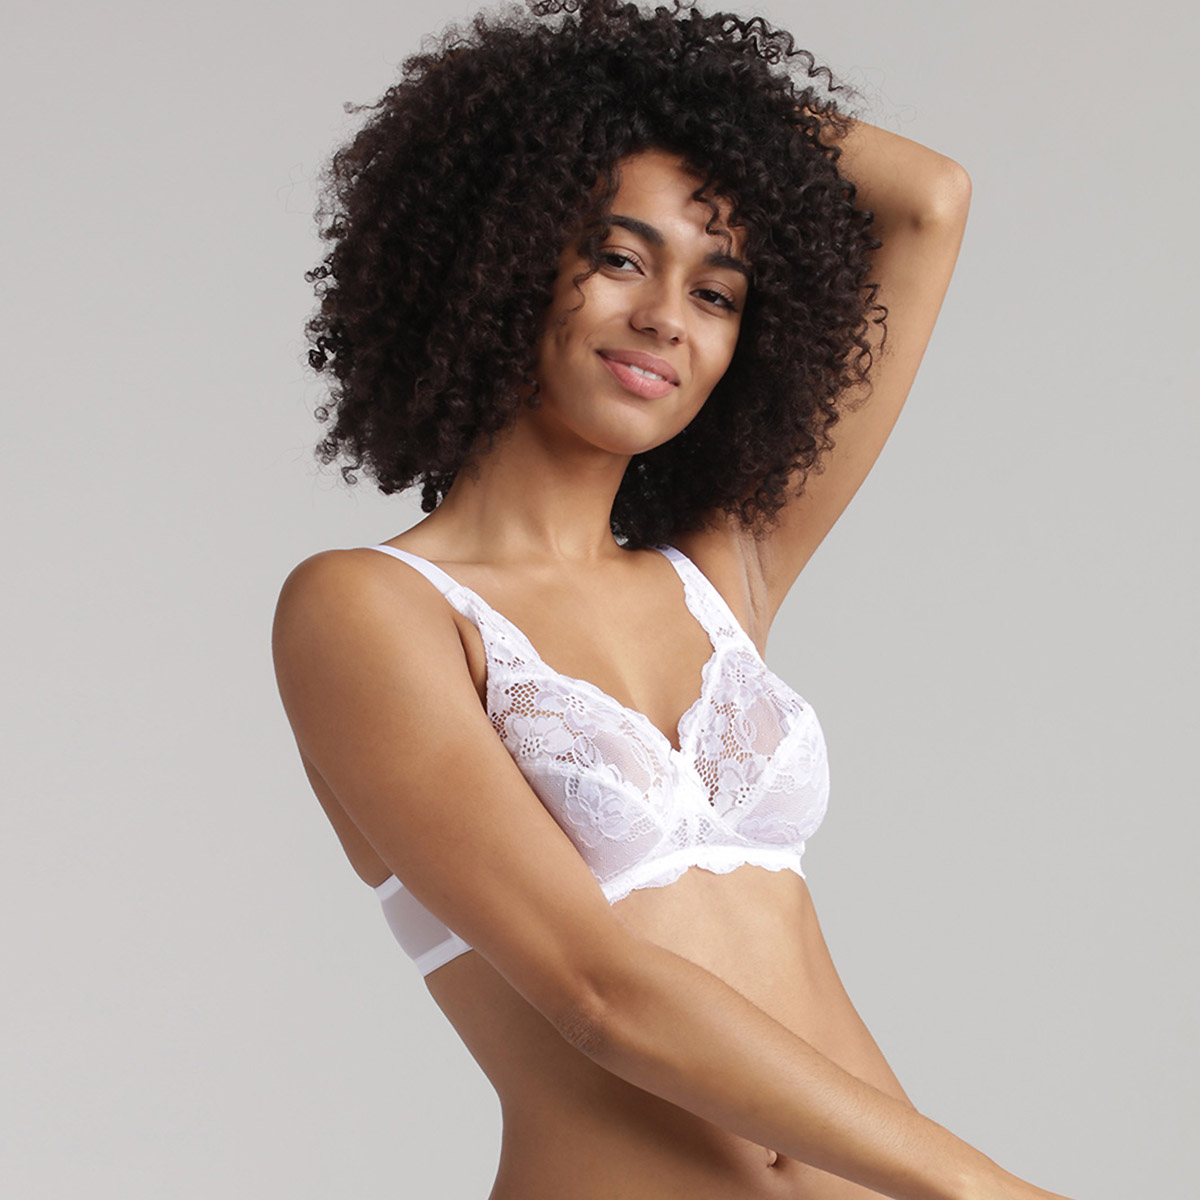 Non Wired Bra in White Lace Essential Elegance, , PLAYTEX